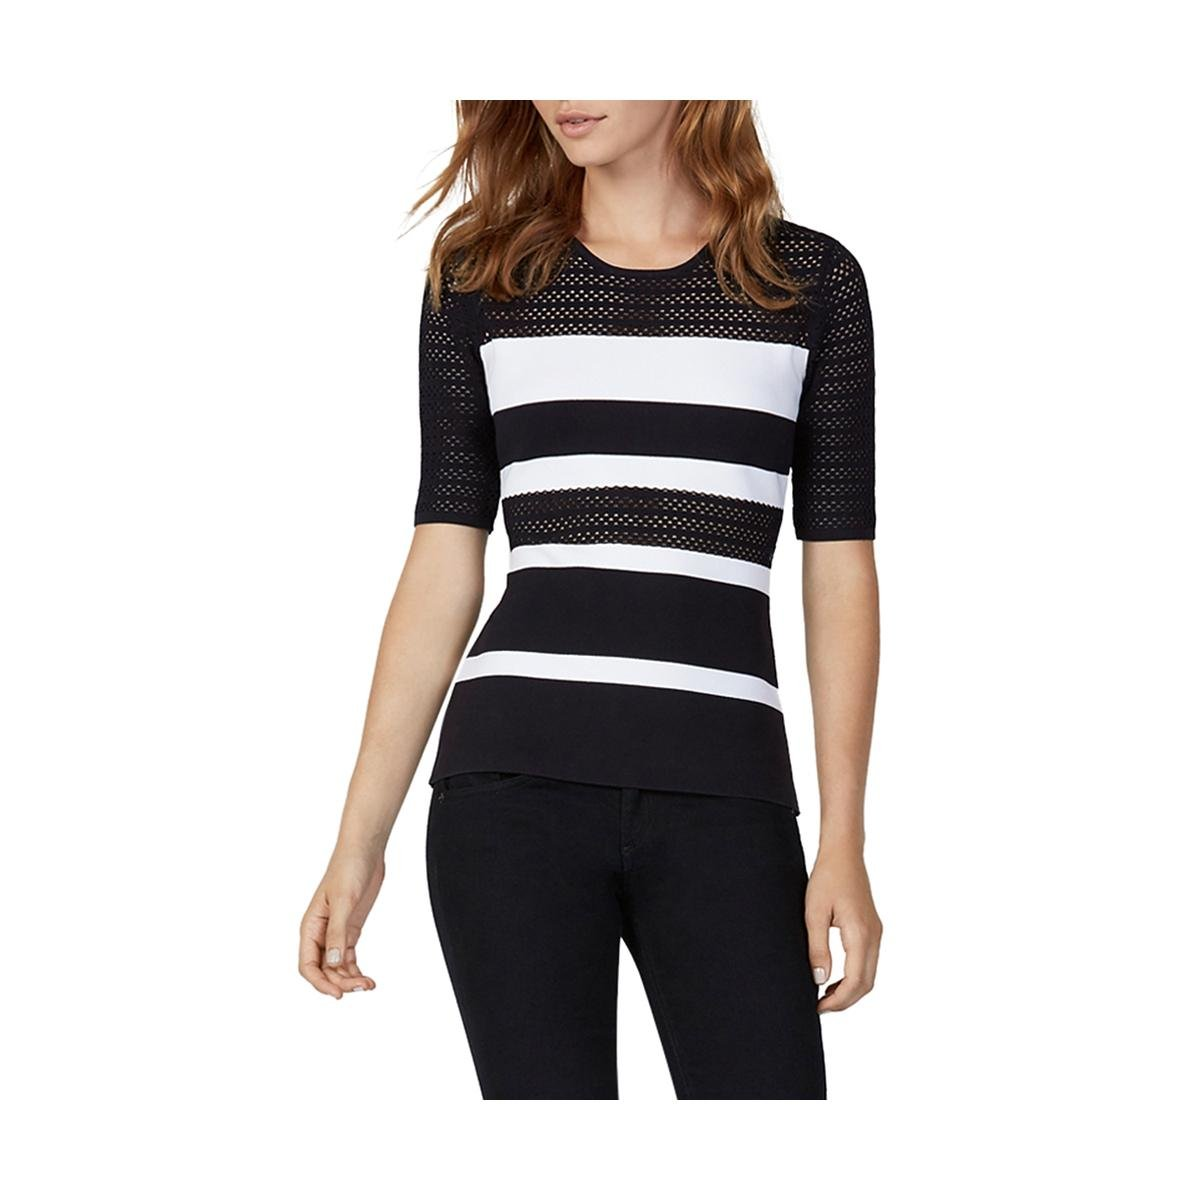 Bailey 44 Womens Pointelle Striped Pullover Sweater B/W S